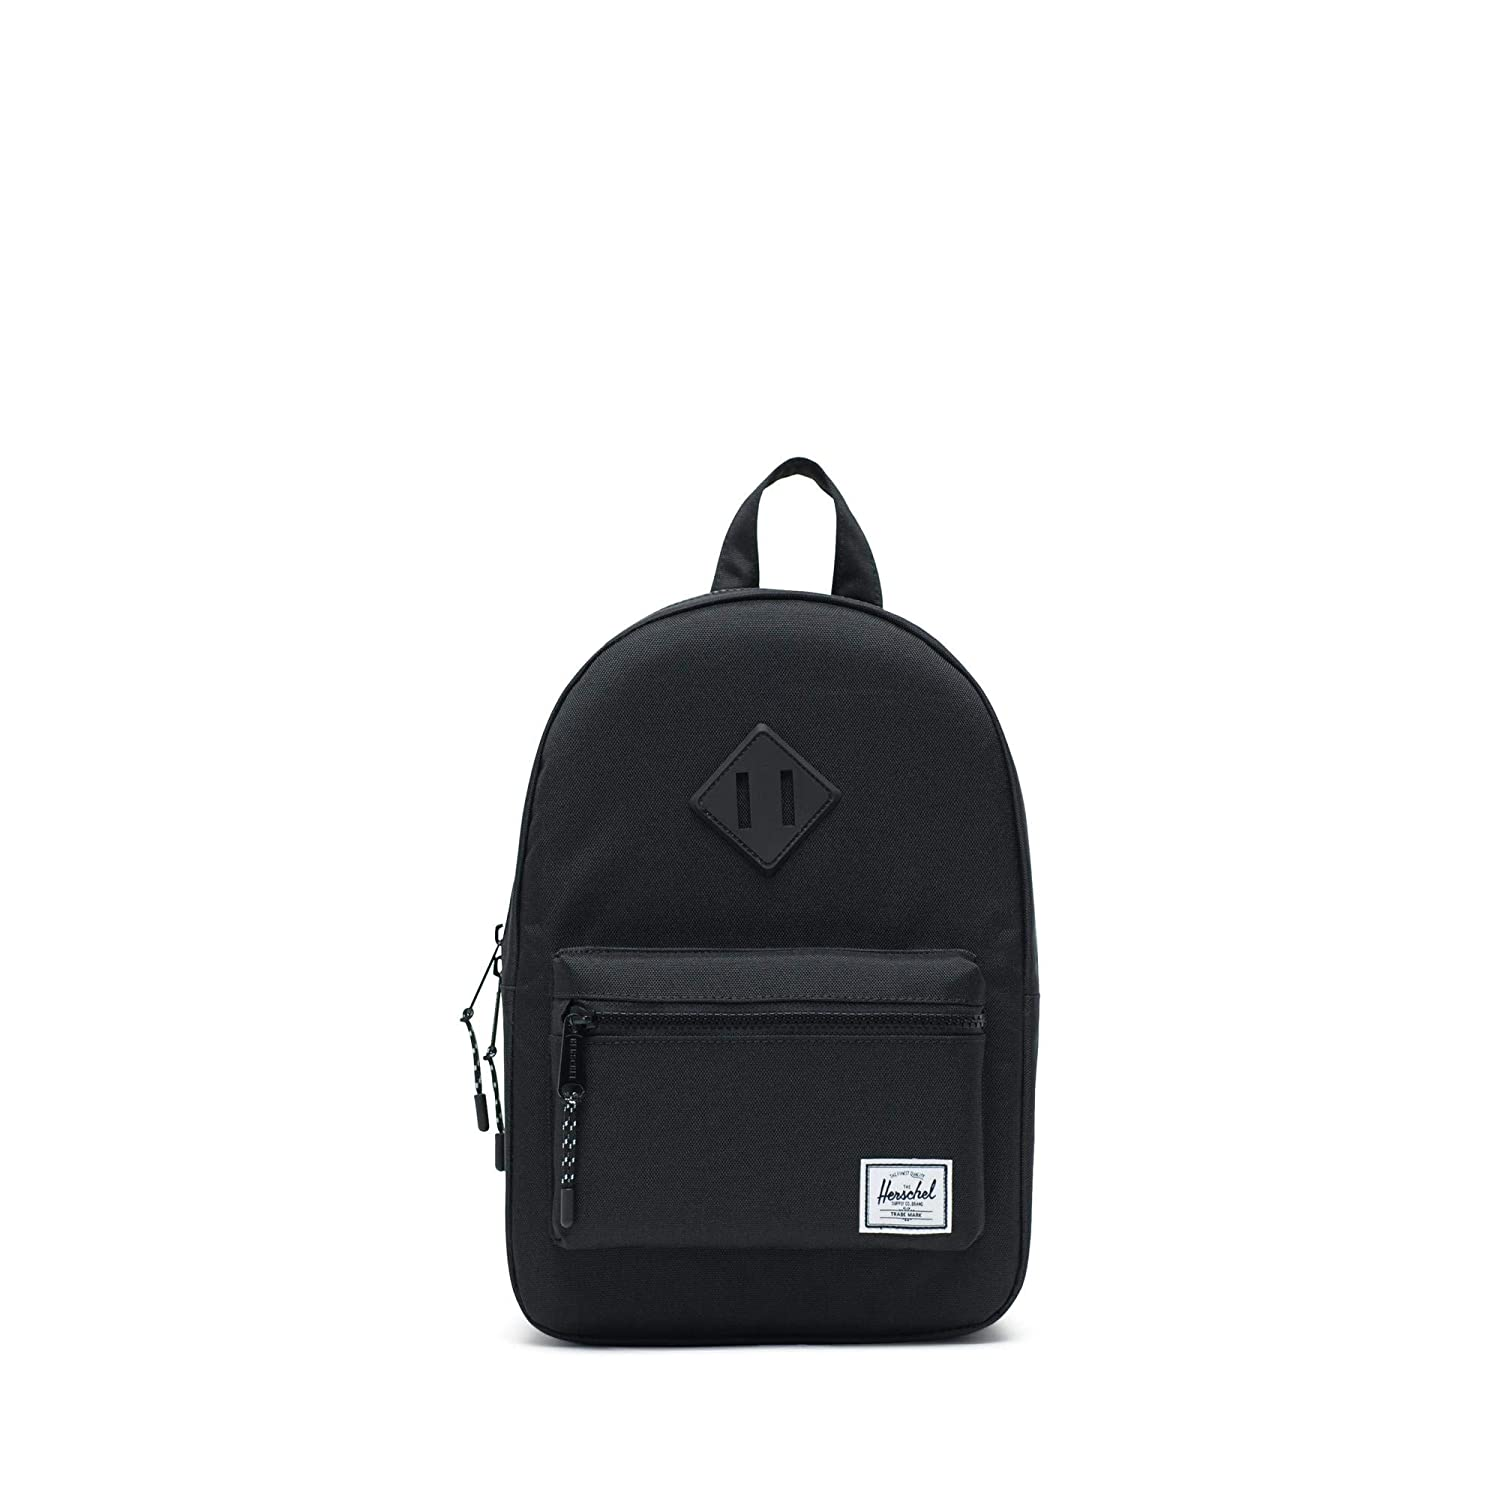 aa76257a9ff Amazon.com   Herschel Heritage Backpack, Black   Casual Daypacks